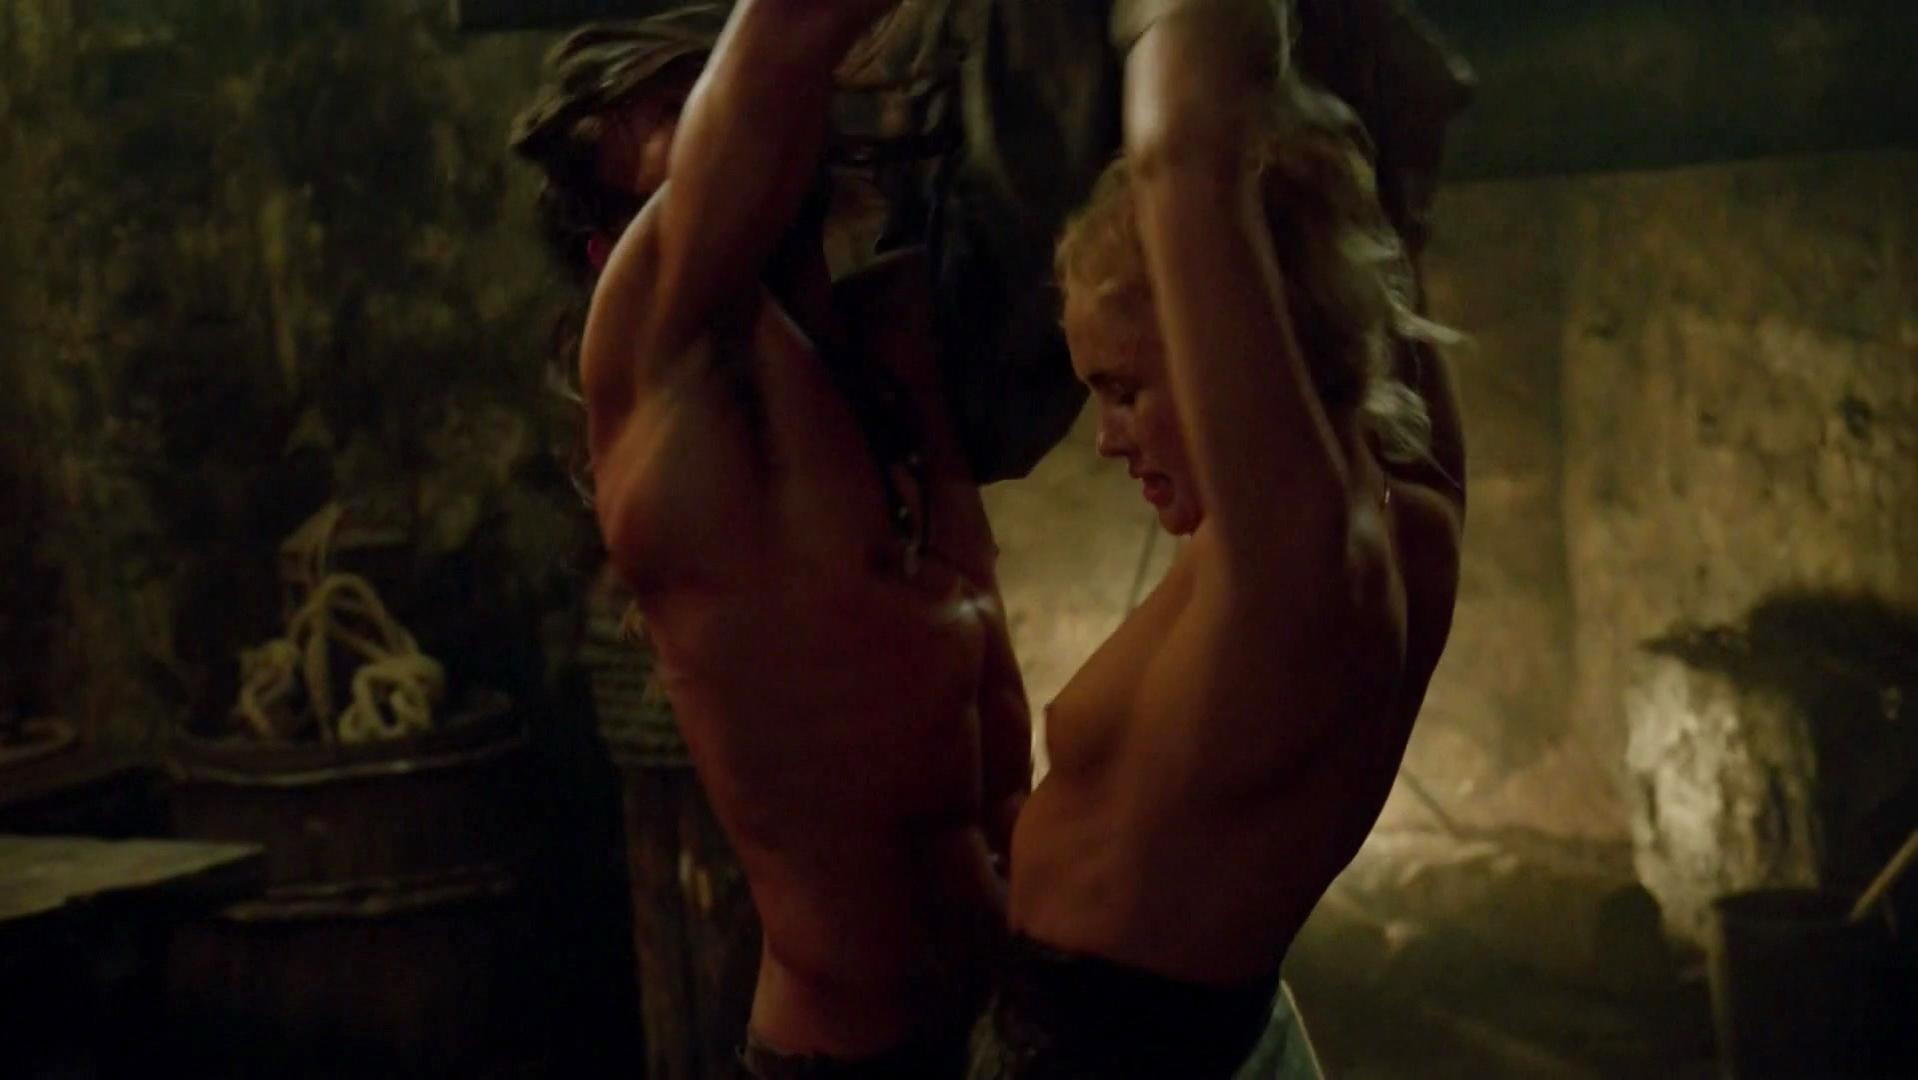 Hannah New nude - Black Sails s02e03 (2015)